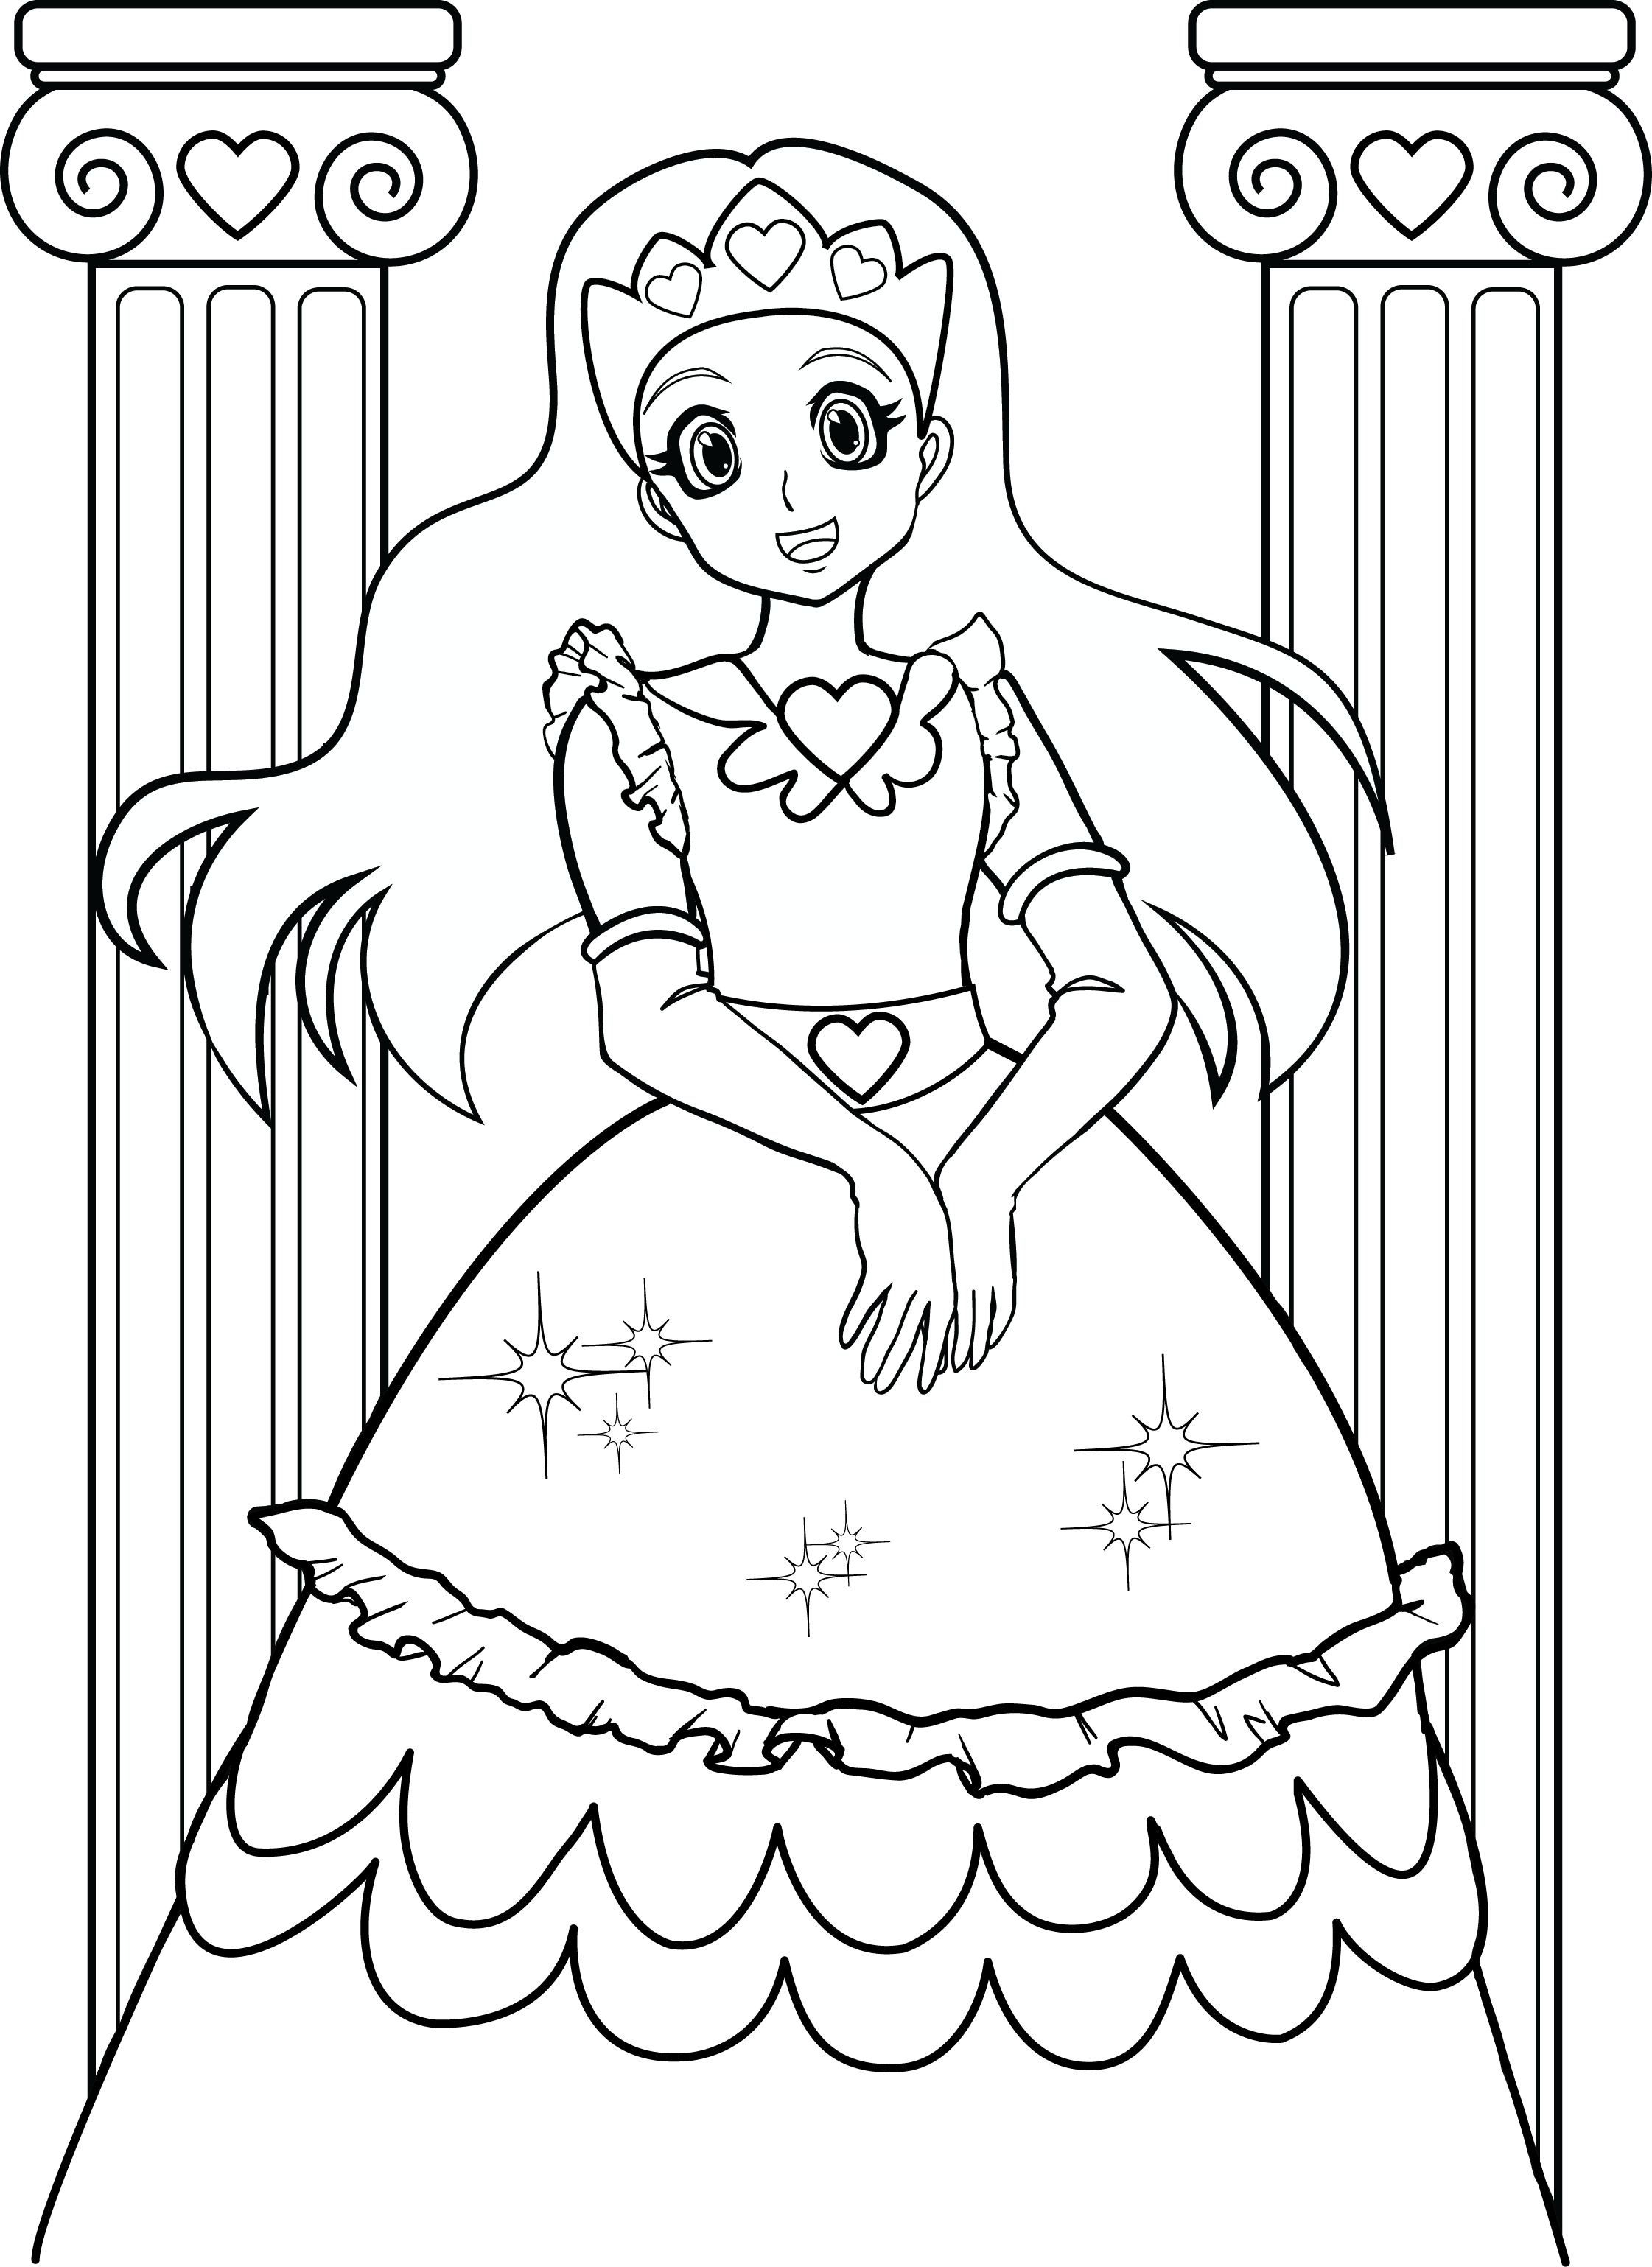 Coloring Pages For Girls 7 Coloring Kids | coloring_pages ...